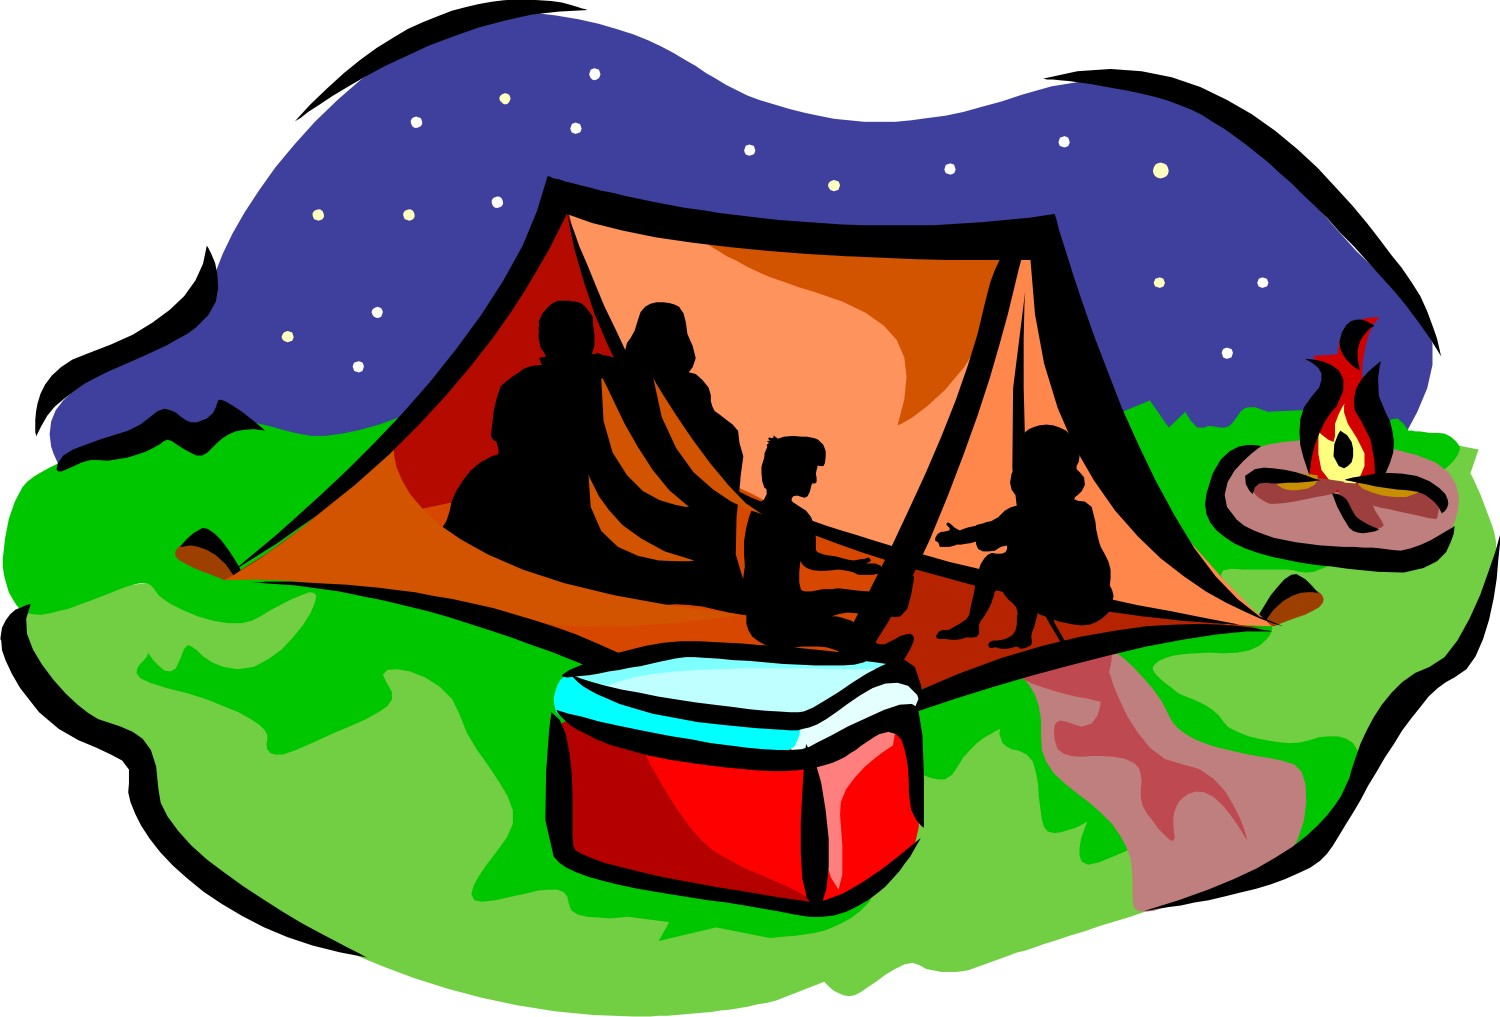 Cartoon Camping Clipart.